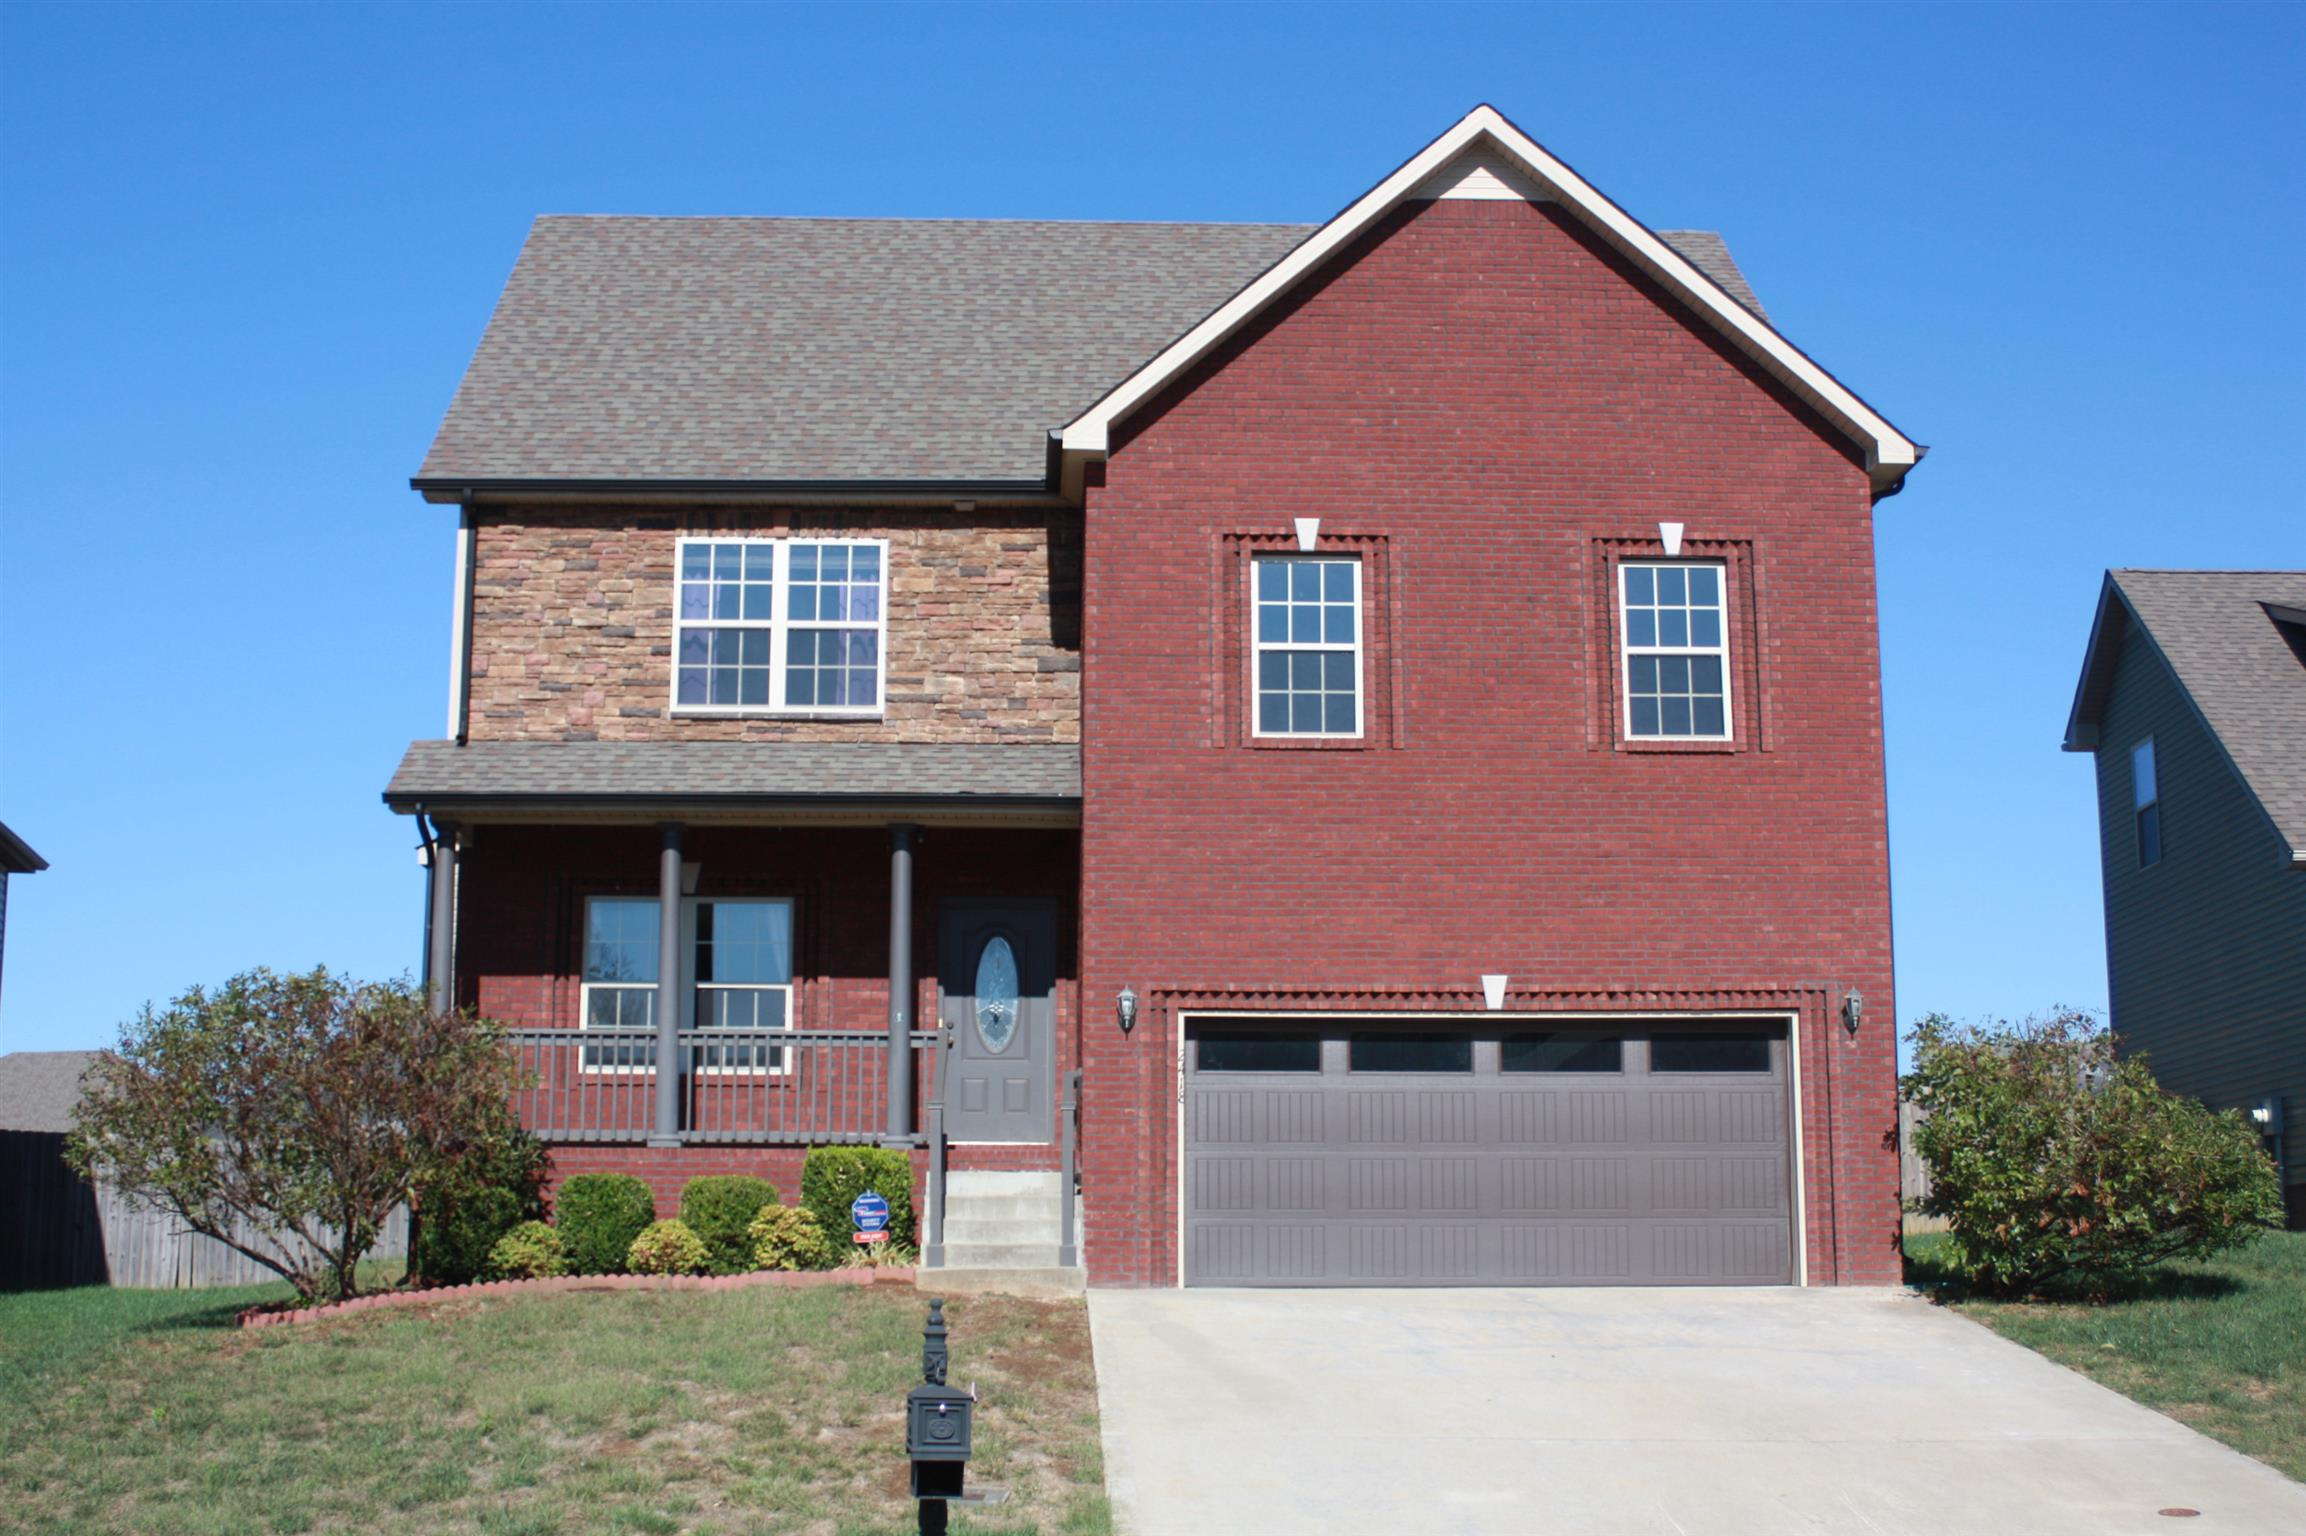 2418 Senseney Dr, Clarksville, TN 37042 - Clarksville, TN real estate listing